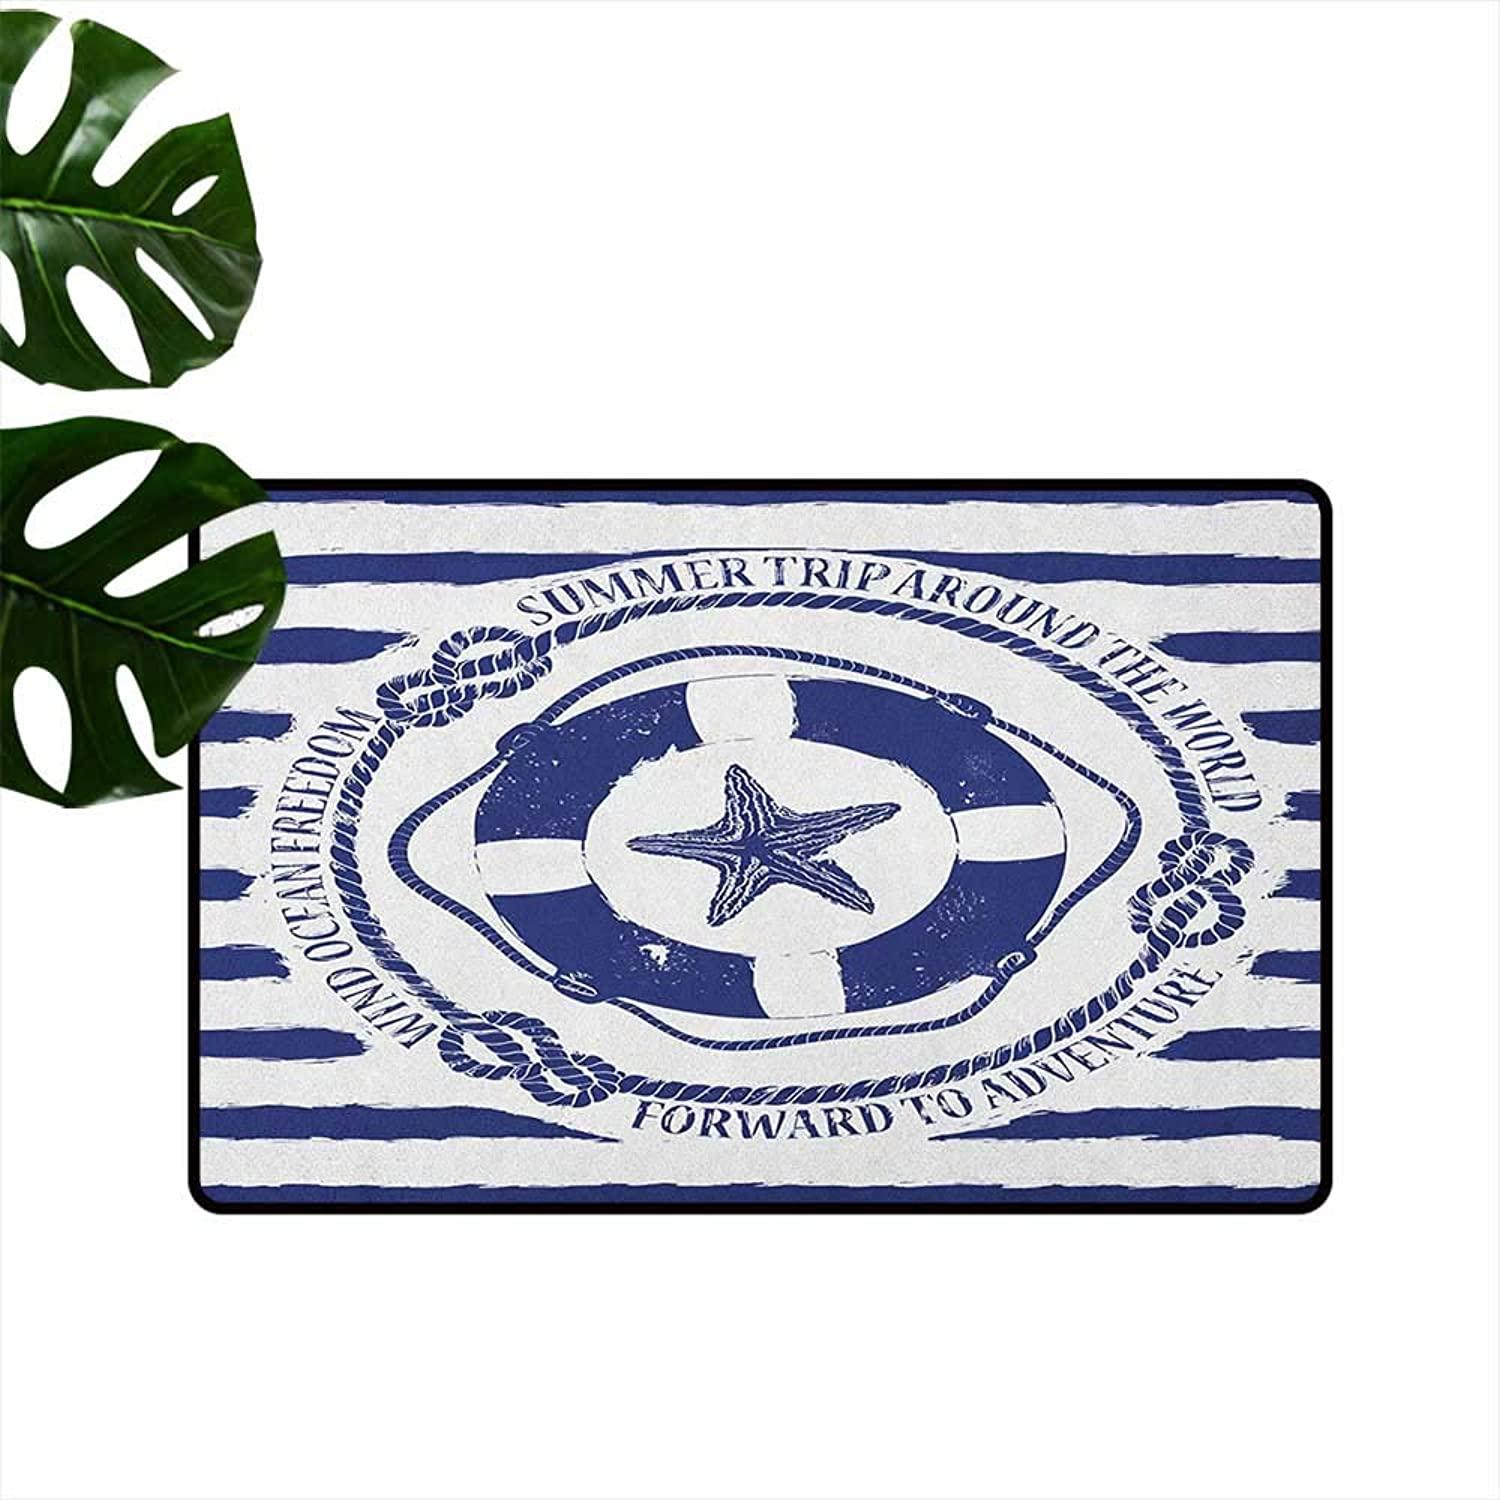 Starfish Waterproof Door mat Trip Around The World Nautical Emblem with Lifebuoy Starfish Striped Design Personality W35 x L59 Navy bluee White